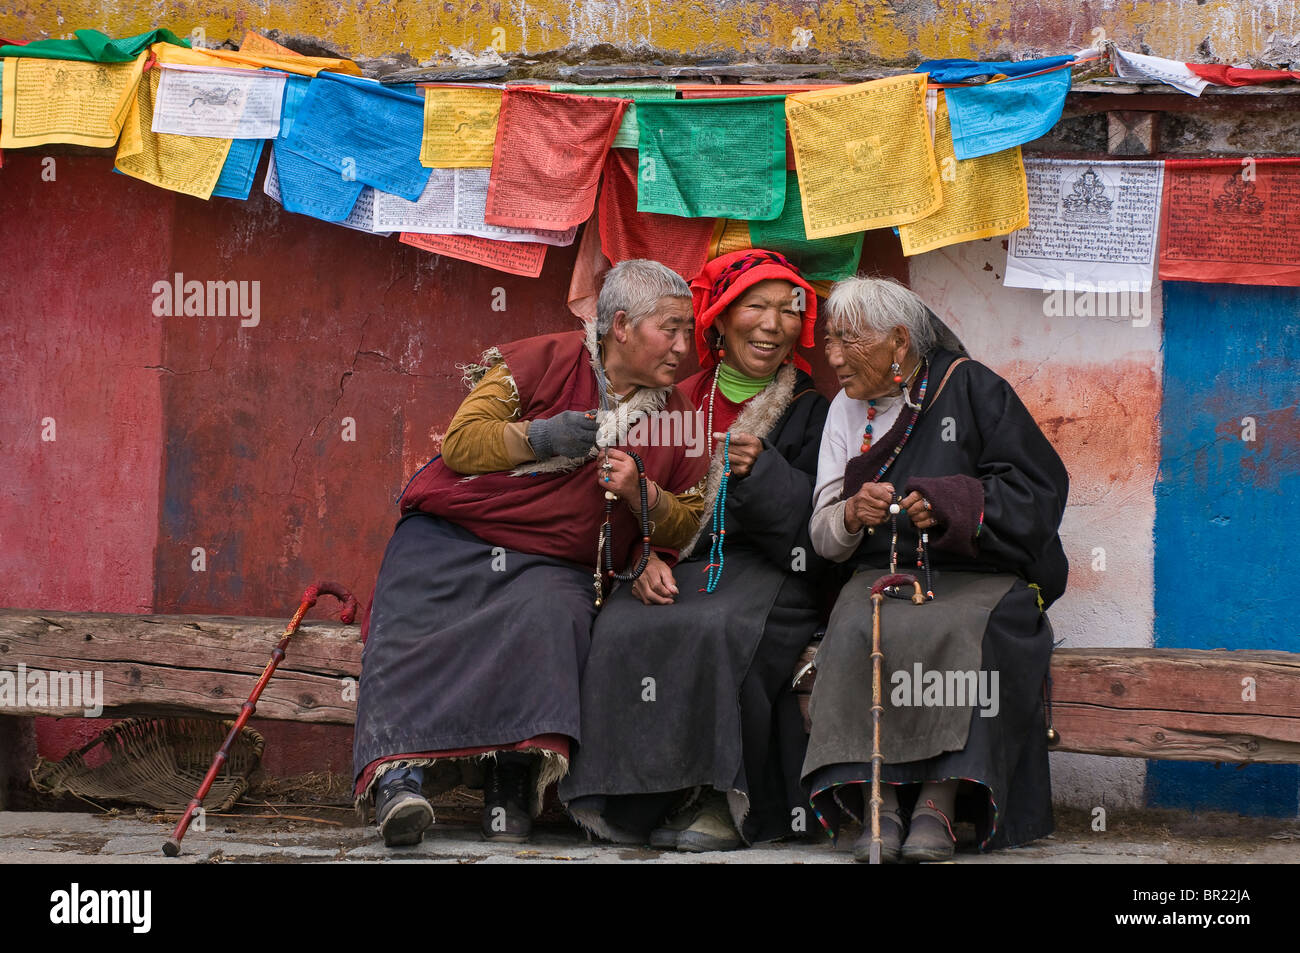 Elderly Tibetan Buddhist pilgrims chat while visiting Tagong Monastery, Sichuan Province, China - Stock Image